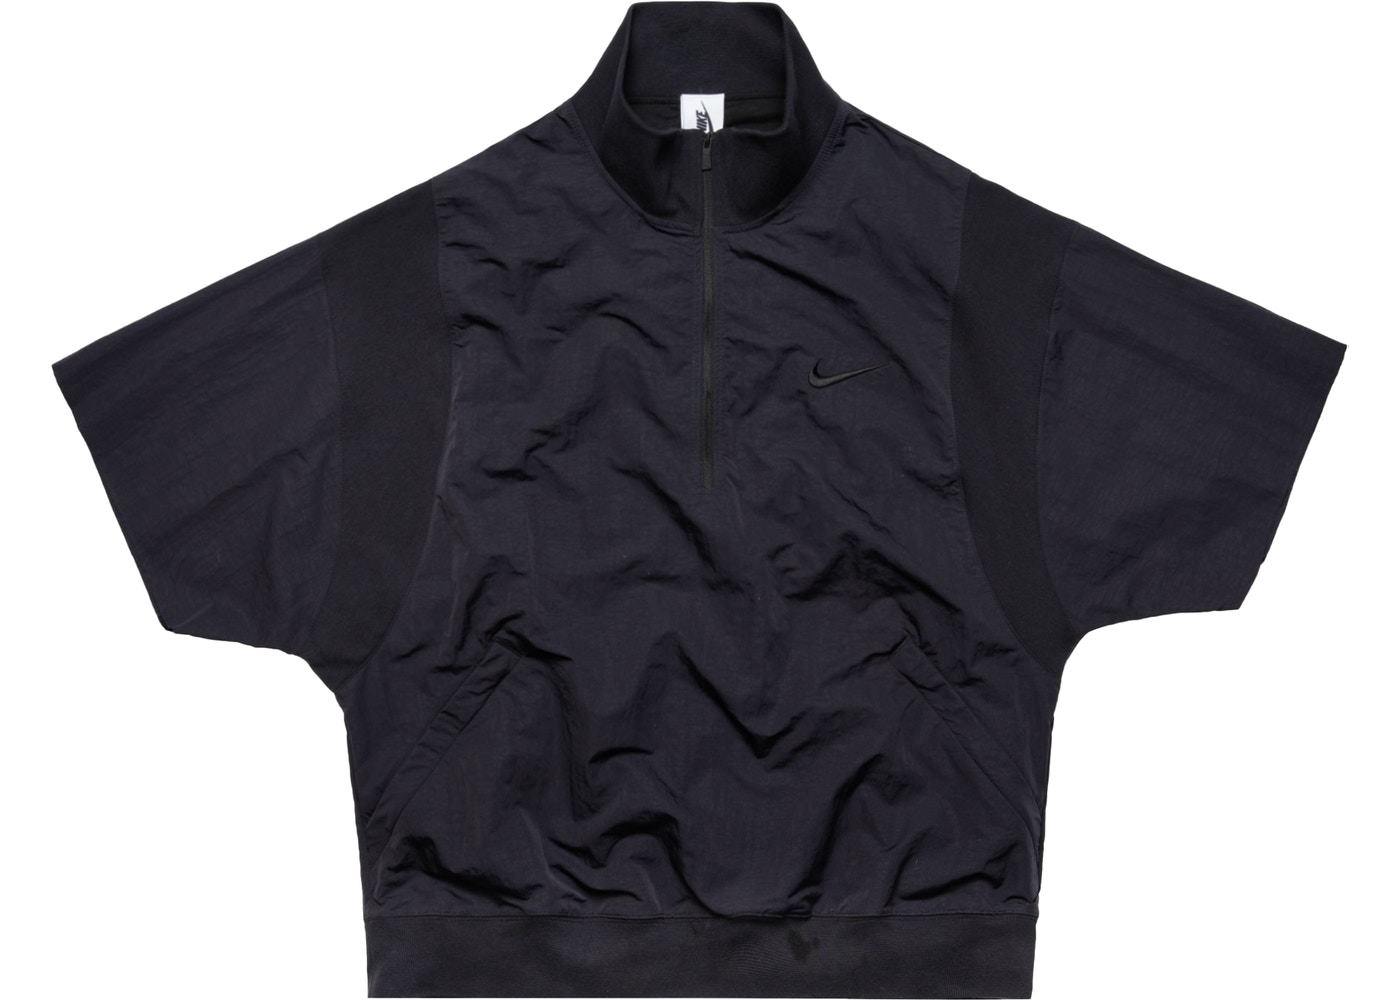 db1df8fc87b4 FEAR OF GOD x Nike 1 2 Zip Short Sleeve Jacket Black Sail Black - FW18